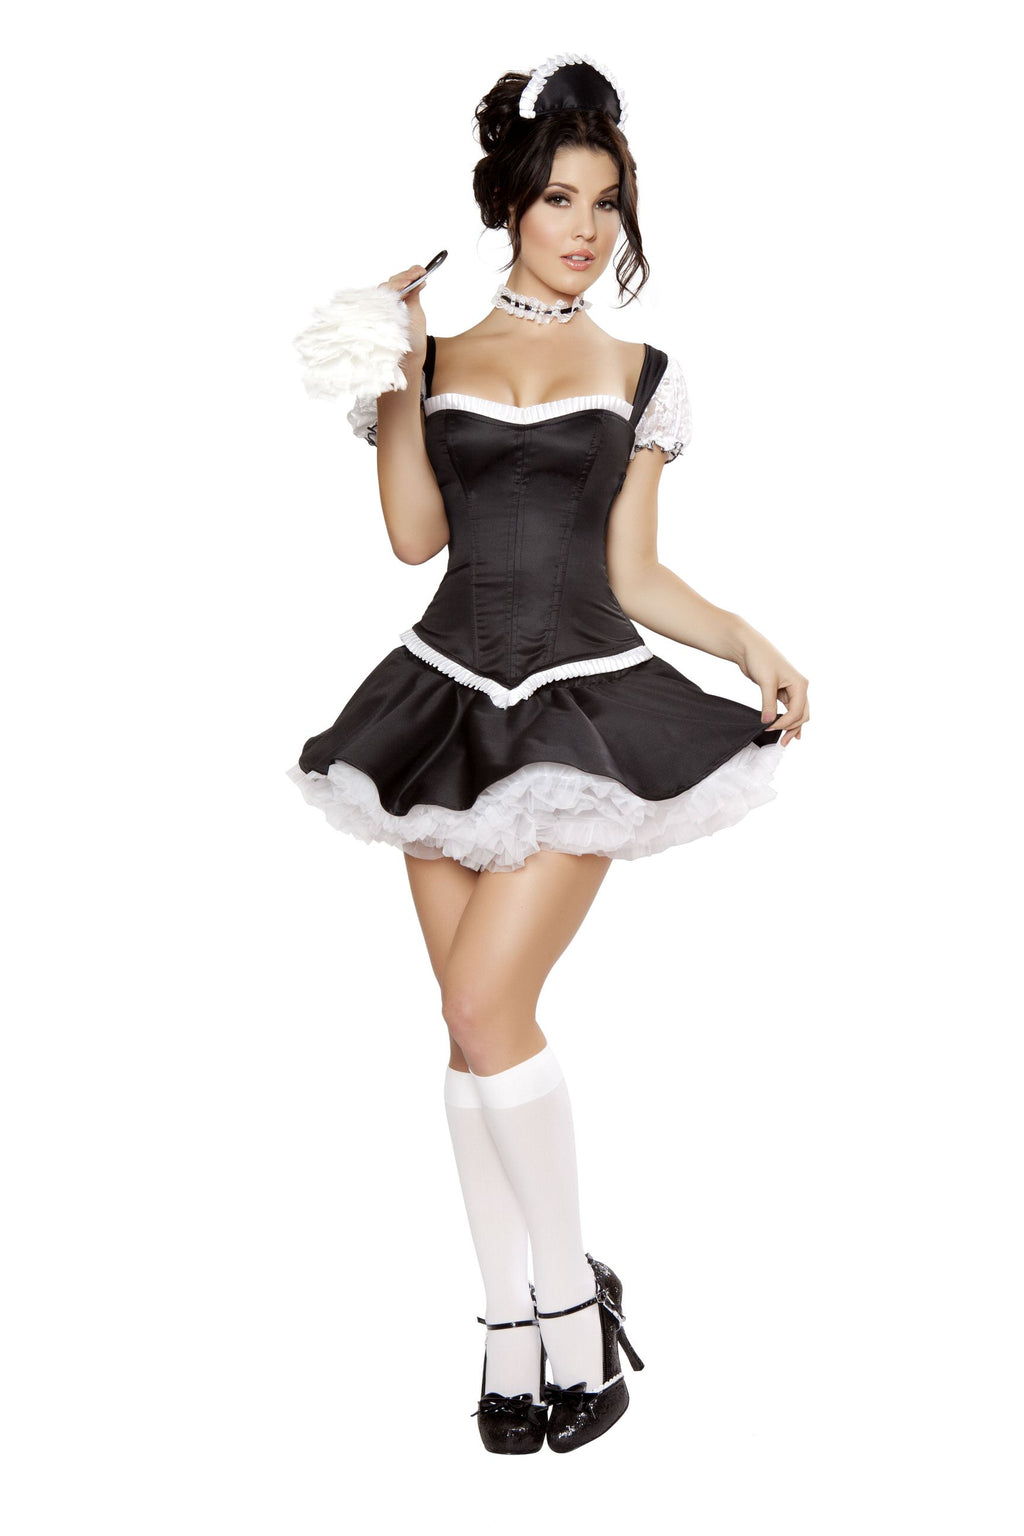 5-Piece-Naughty-French-Maid-Top-&-Mini-Skirt-w/-Accessories-Party-Costume